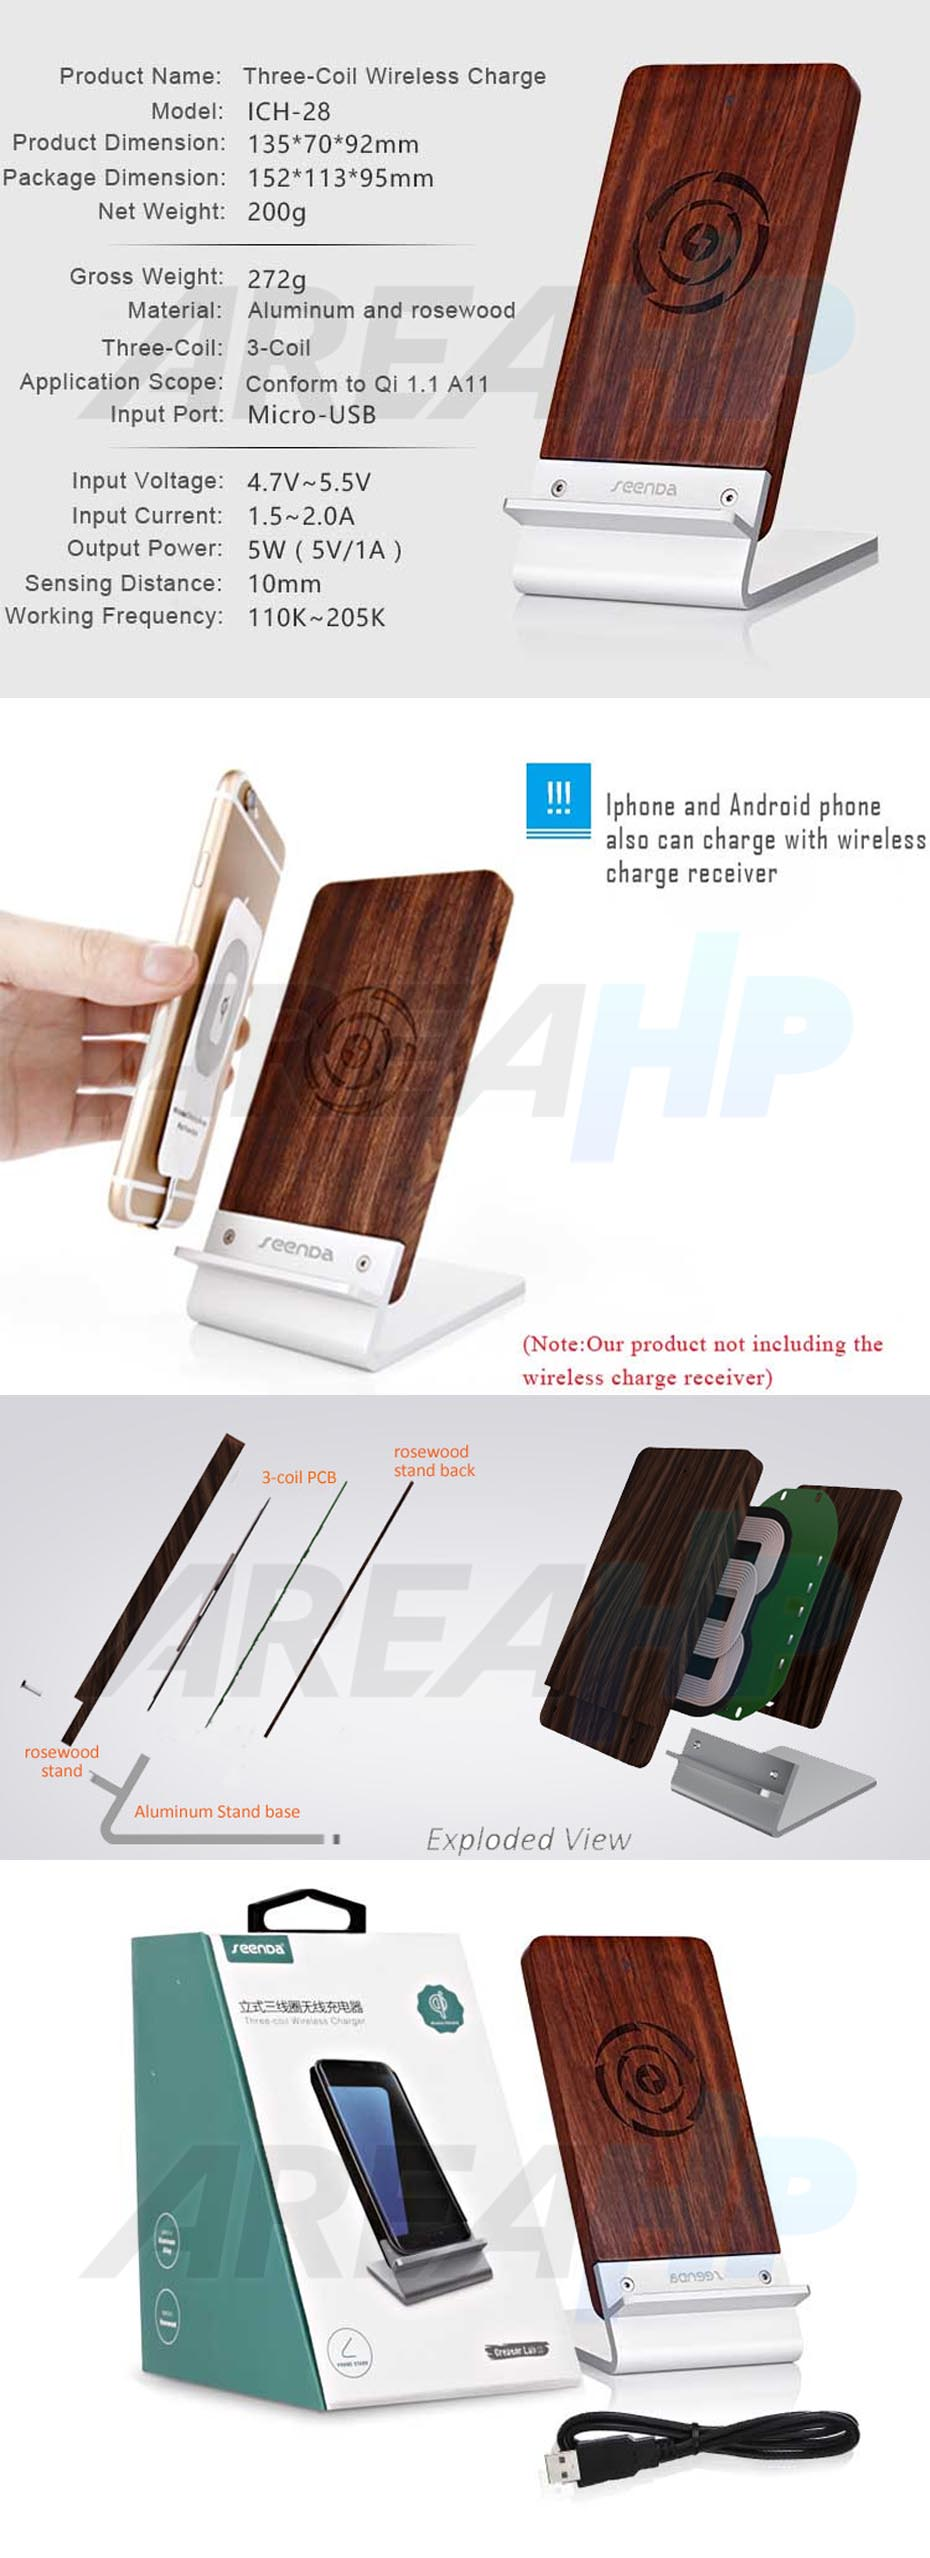 Seenda Wireless Charging Wood Stand ICH-28 Overview